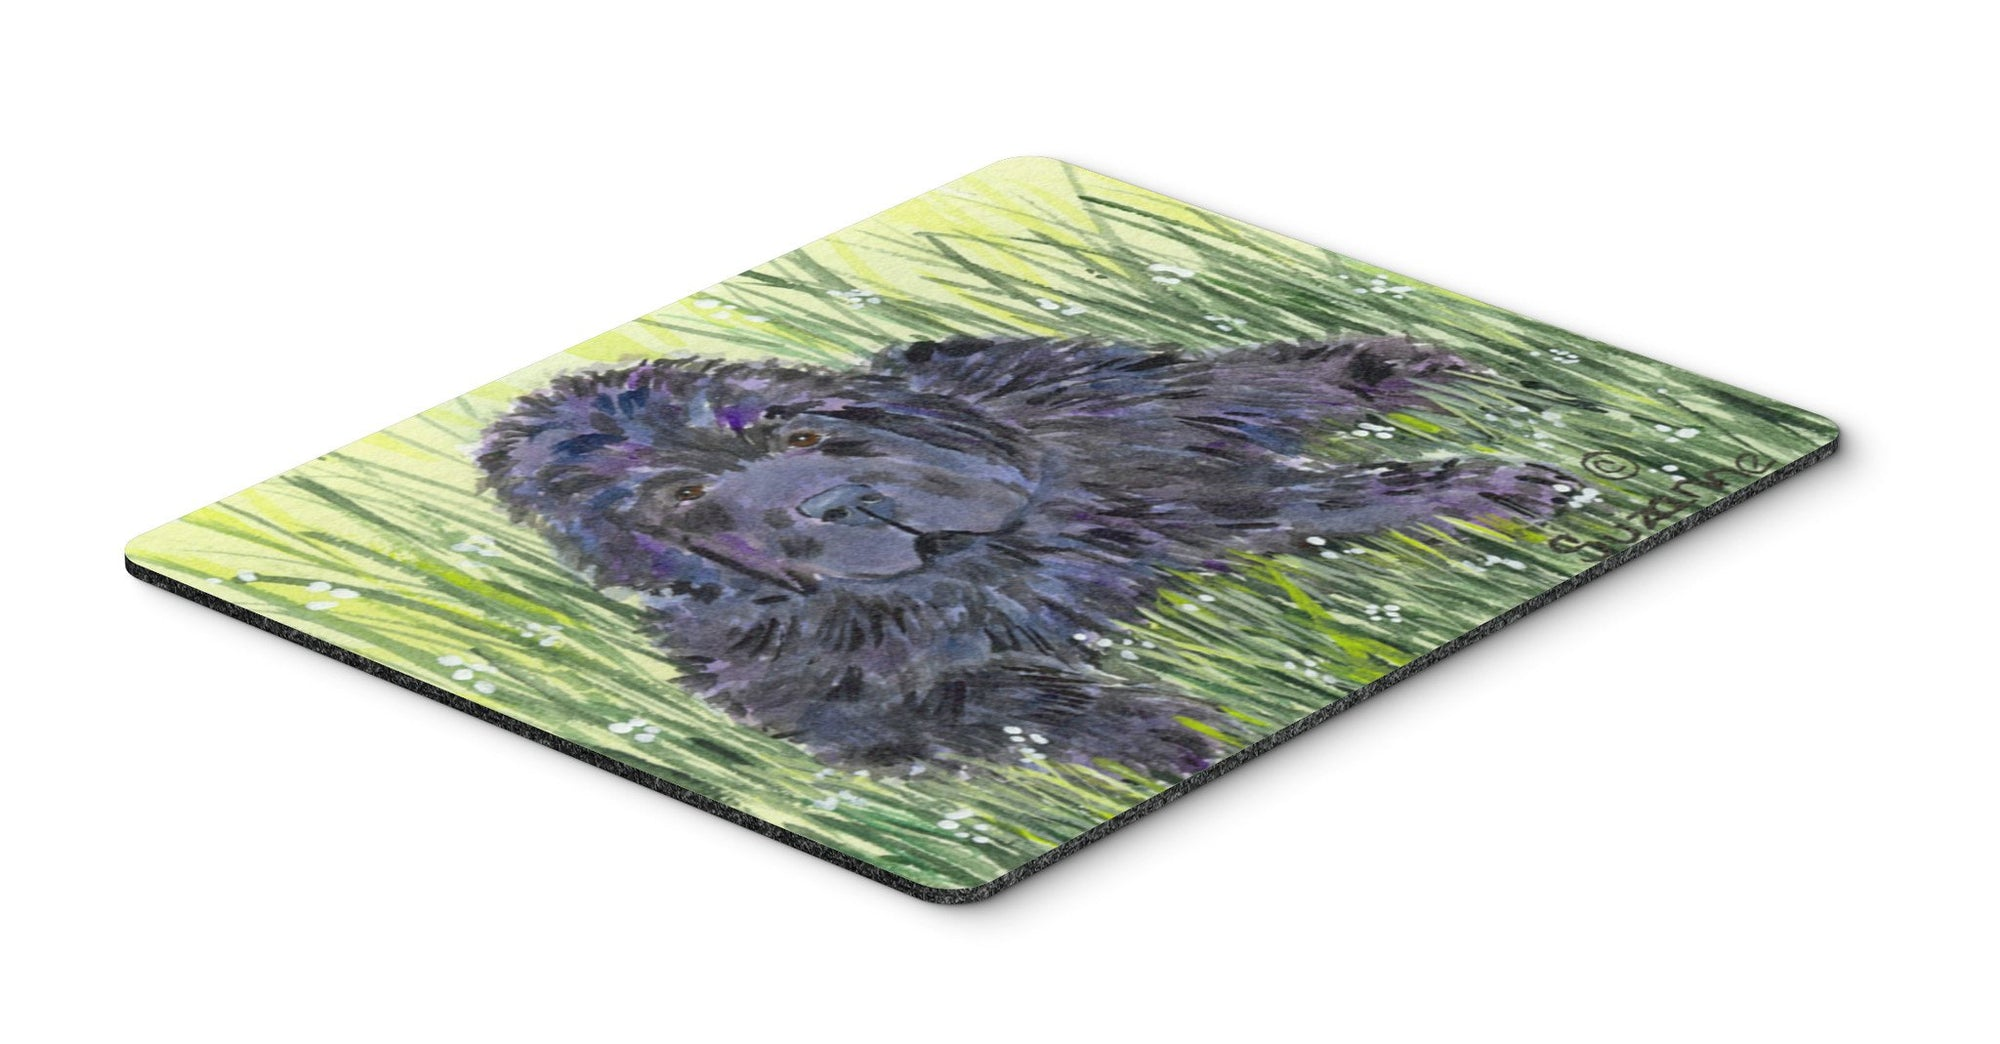 Newfoundland Mouse pad, hot pad, or trivet by Caroline's Treasures